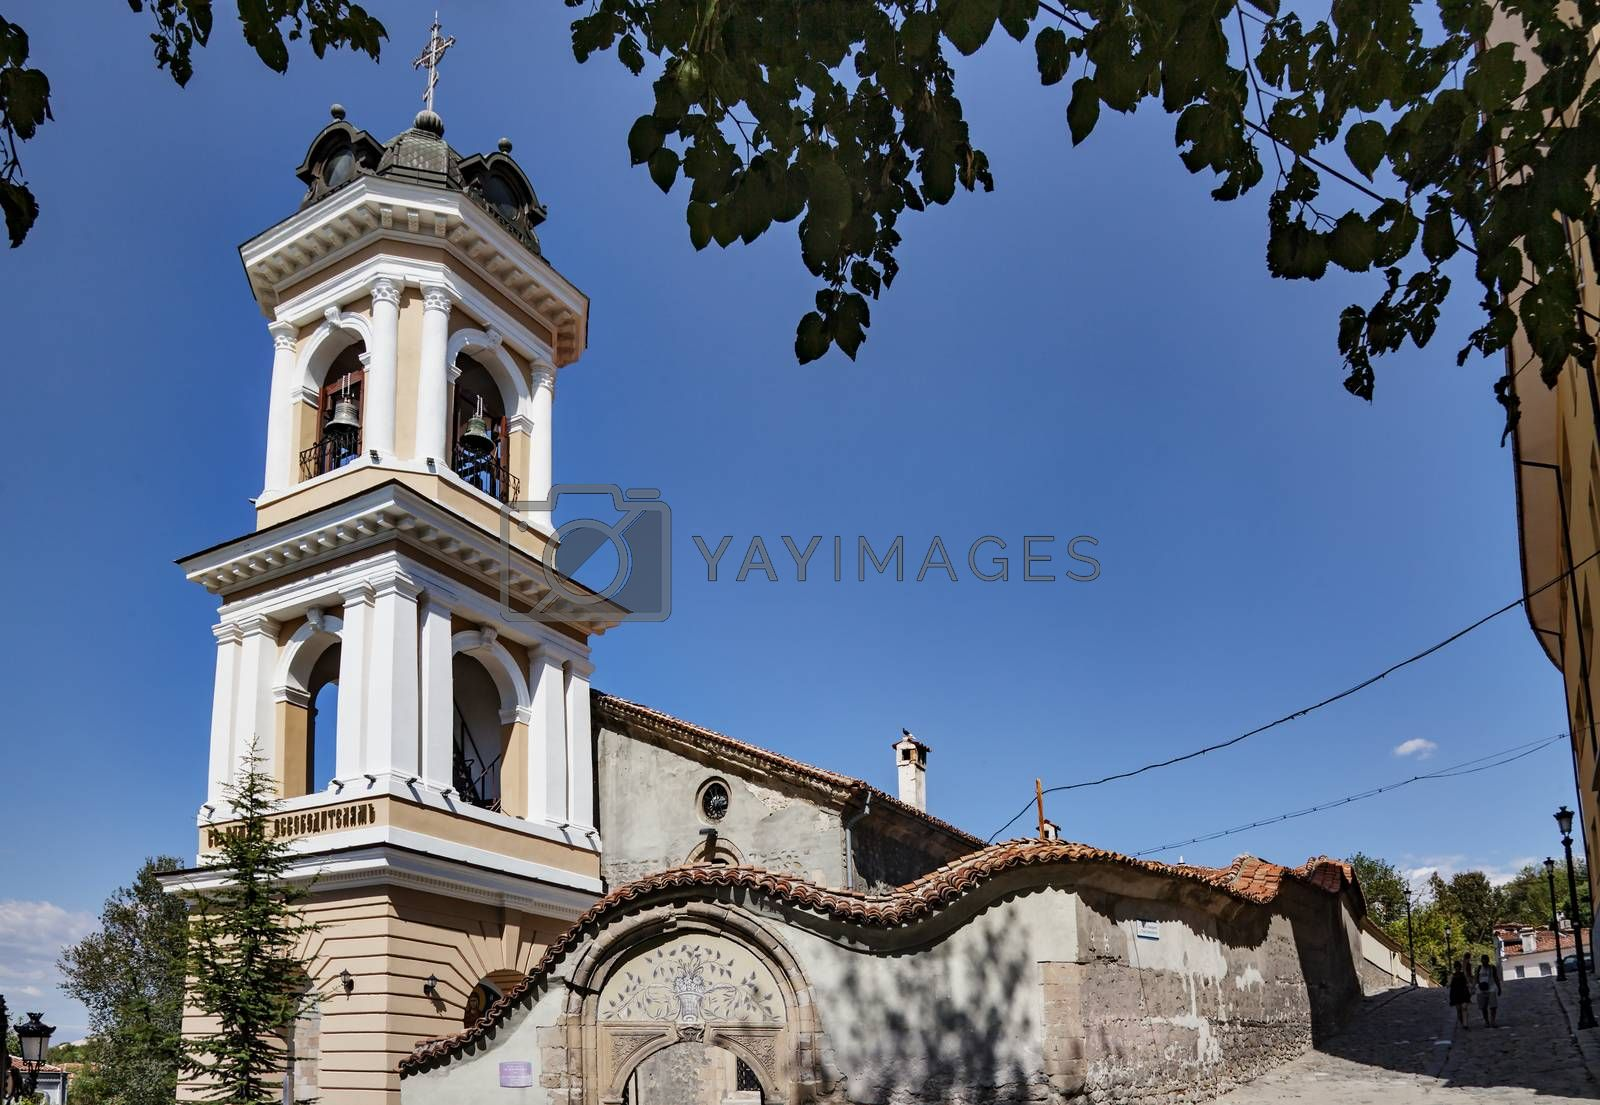 A sunny summer day view of st. The virgin Mary church in Plovdivs old town, Bulgaria, Europe. Horizontal image.